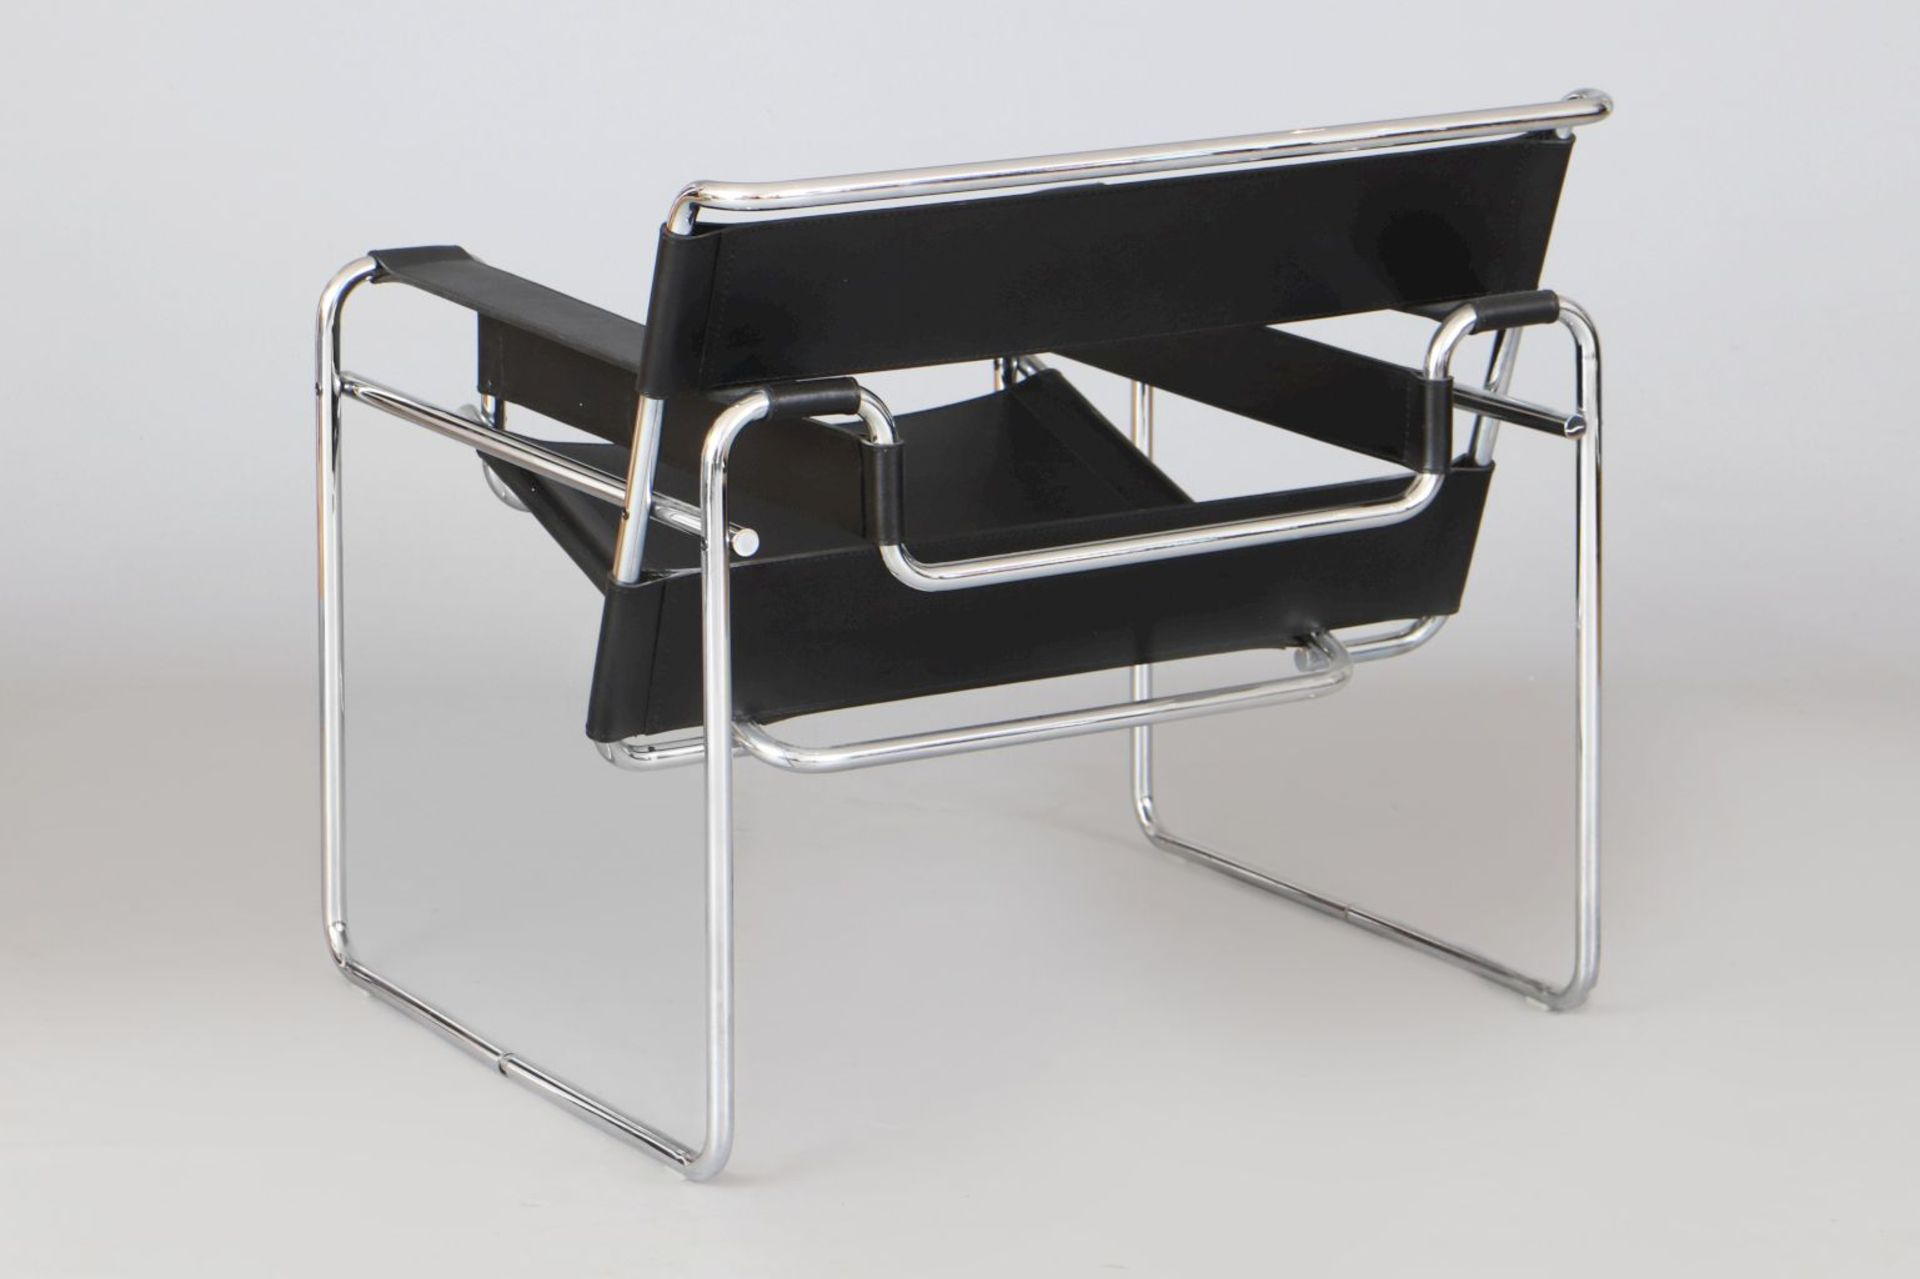 MARCEL BREUER ¨Wassily Chair¨ - Image 3 of 3